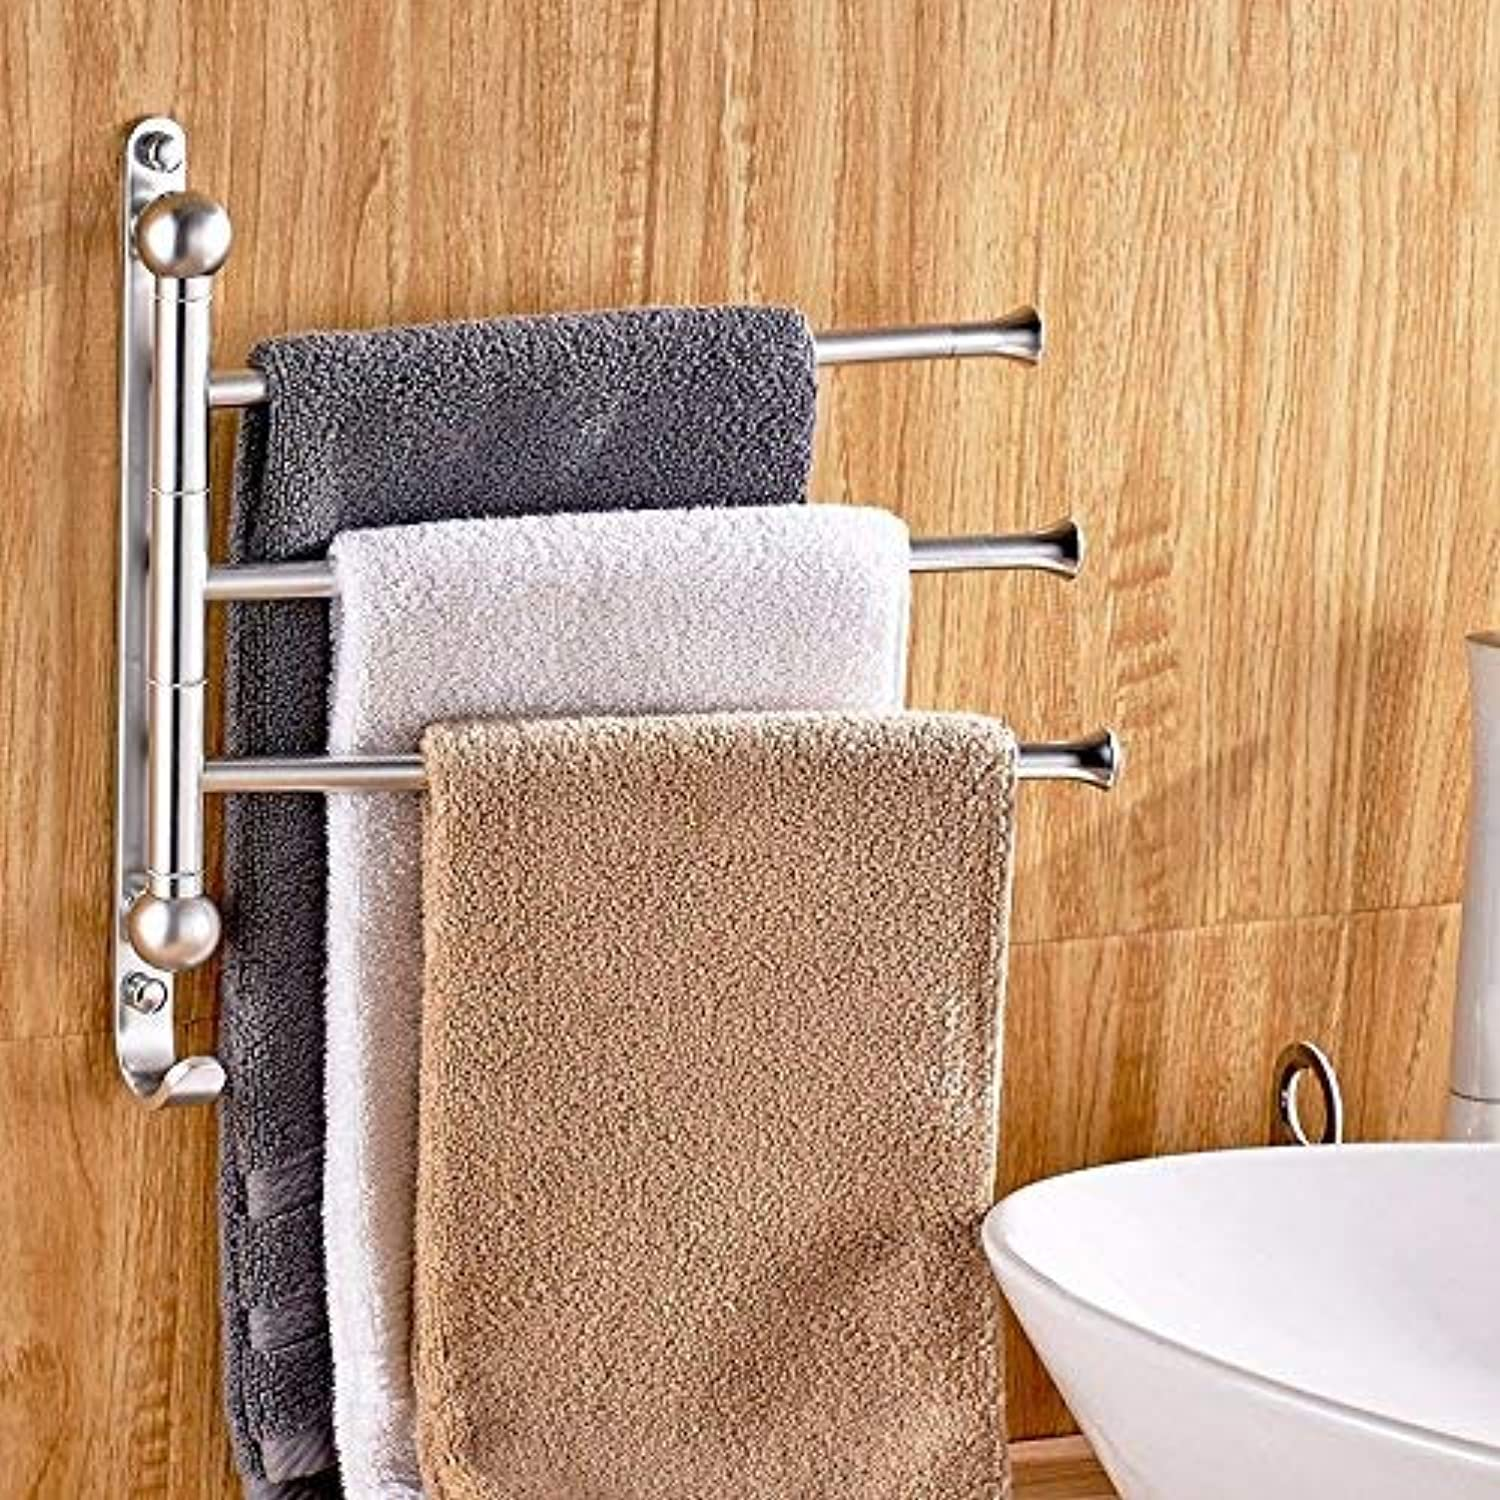 Oudan Towel Racks Aluminum Rocker 3 Swivel Bar Bathroom Rack Wall Mount 31  31Cm Towel Rails